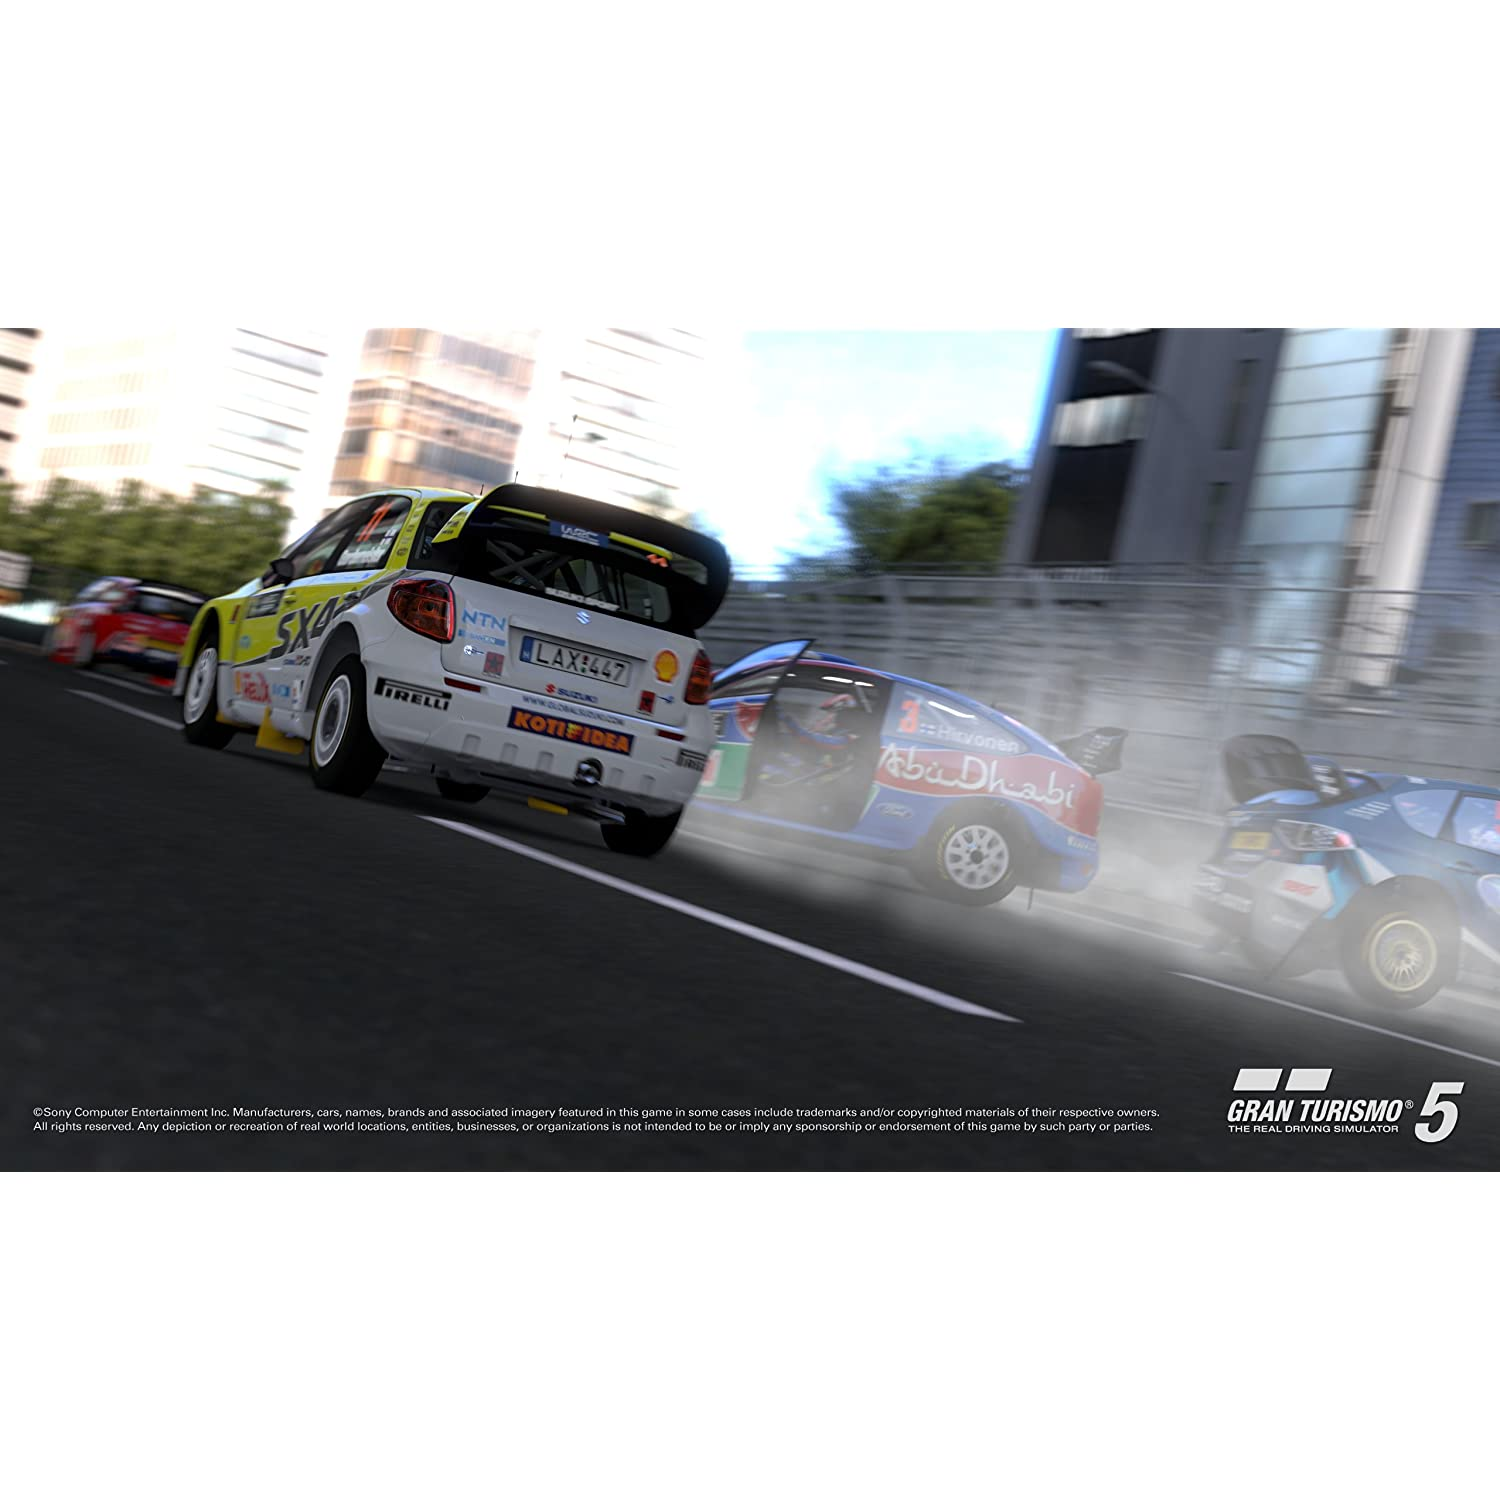 Game, Games, Video Game, Video Games, Playstation 3, PS3, Gran Turismo 5